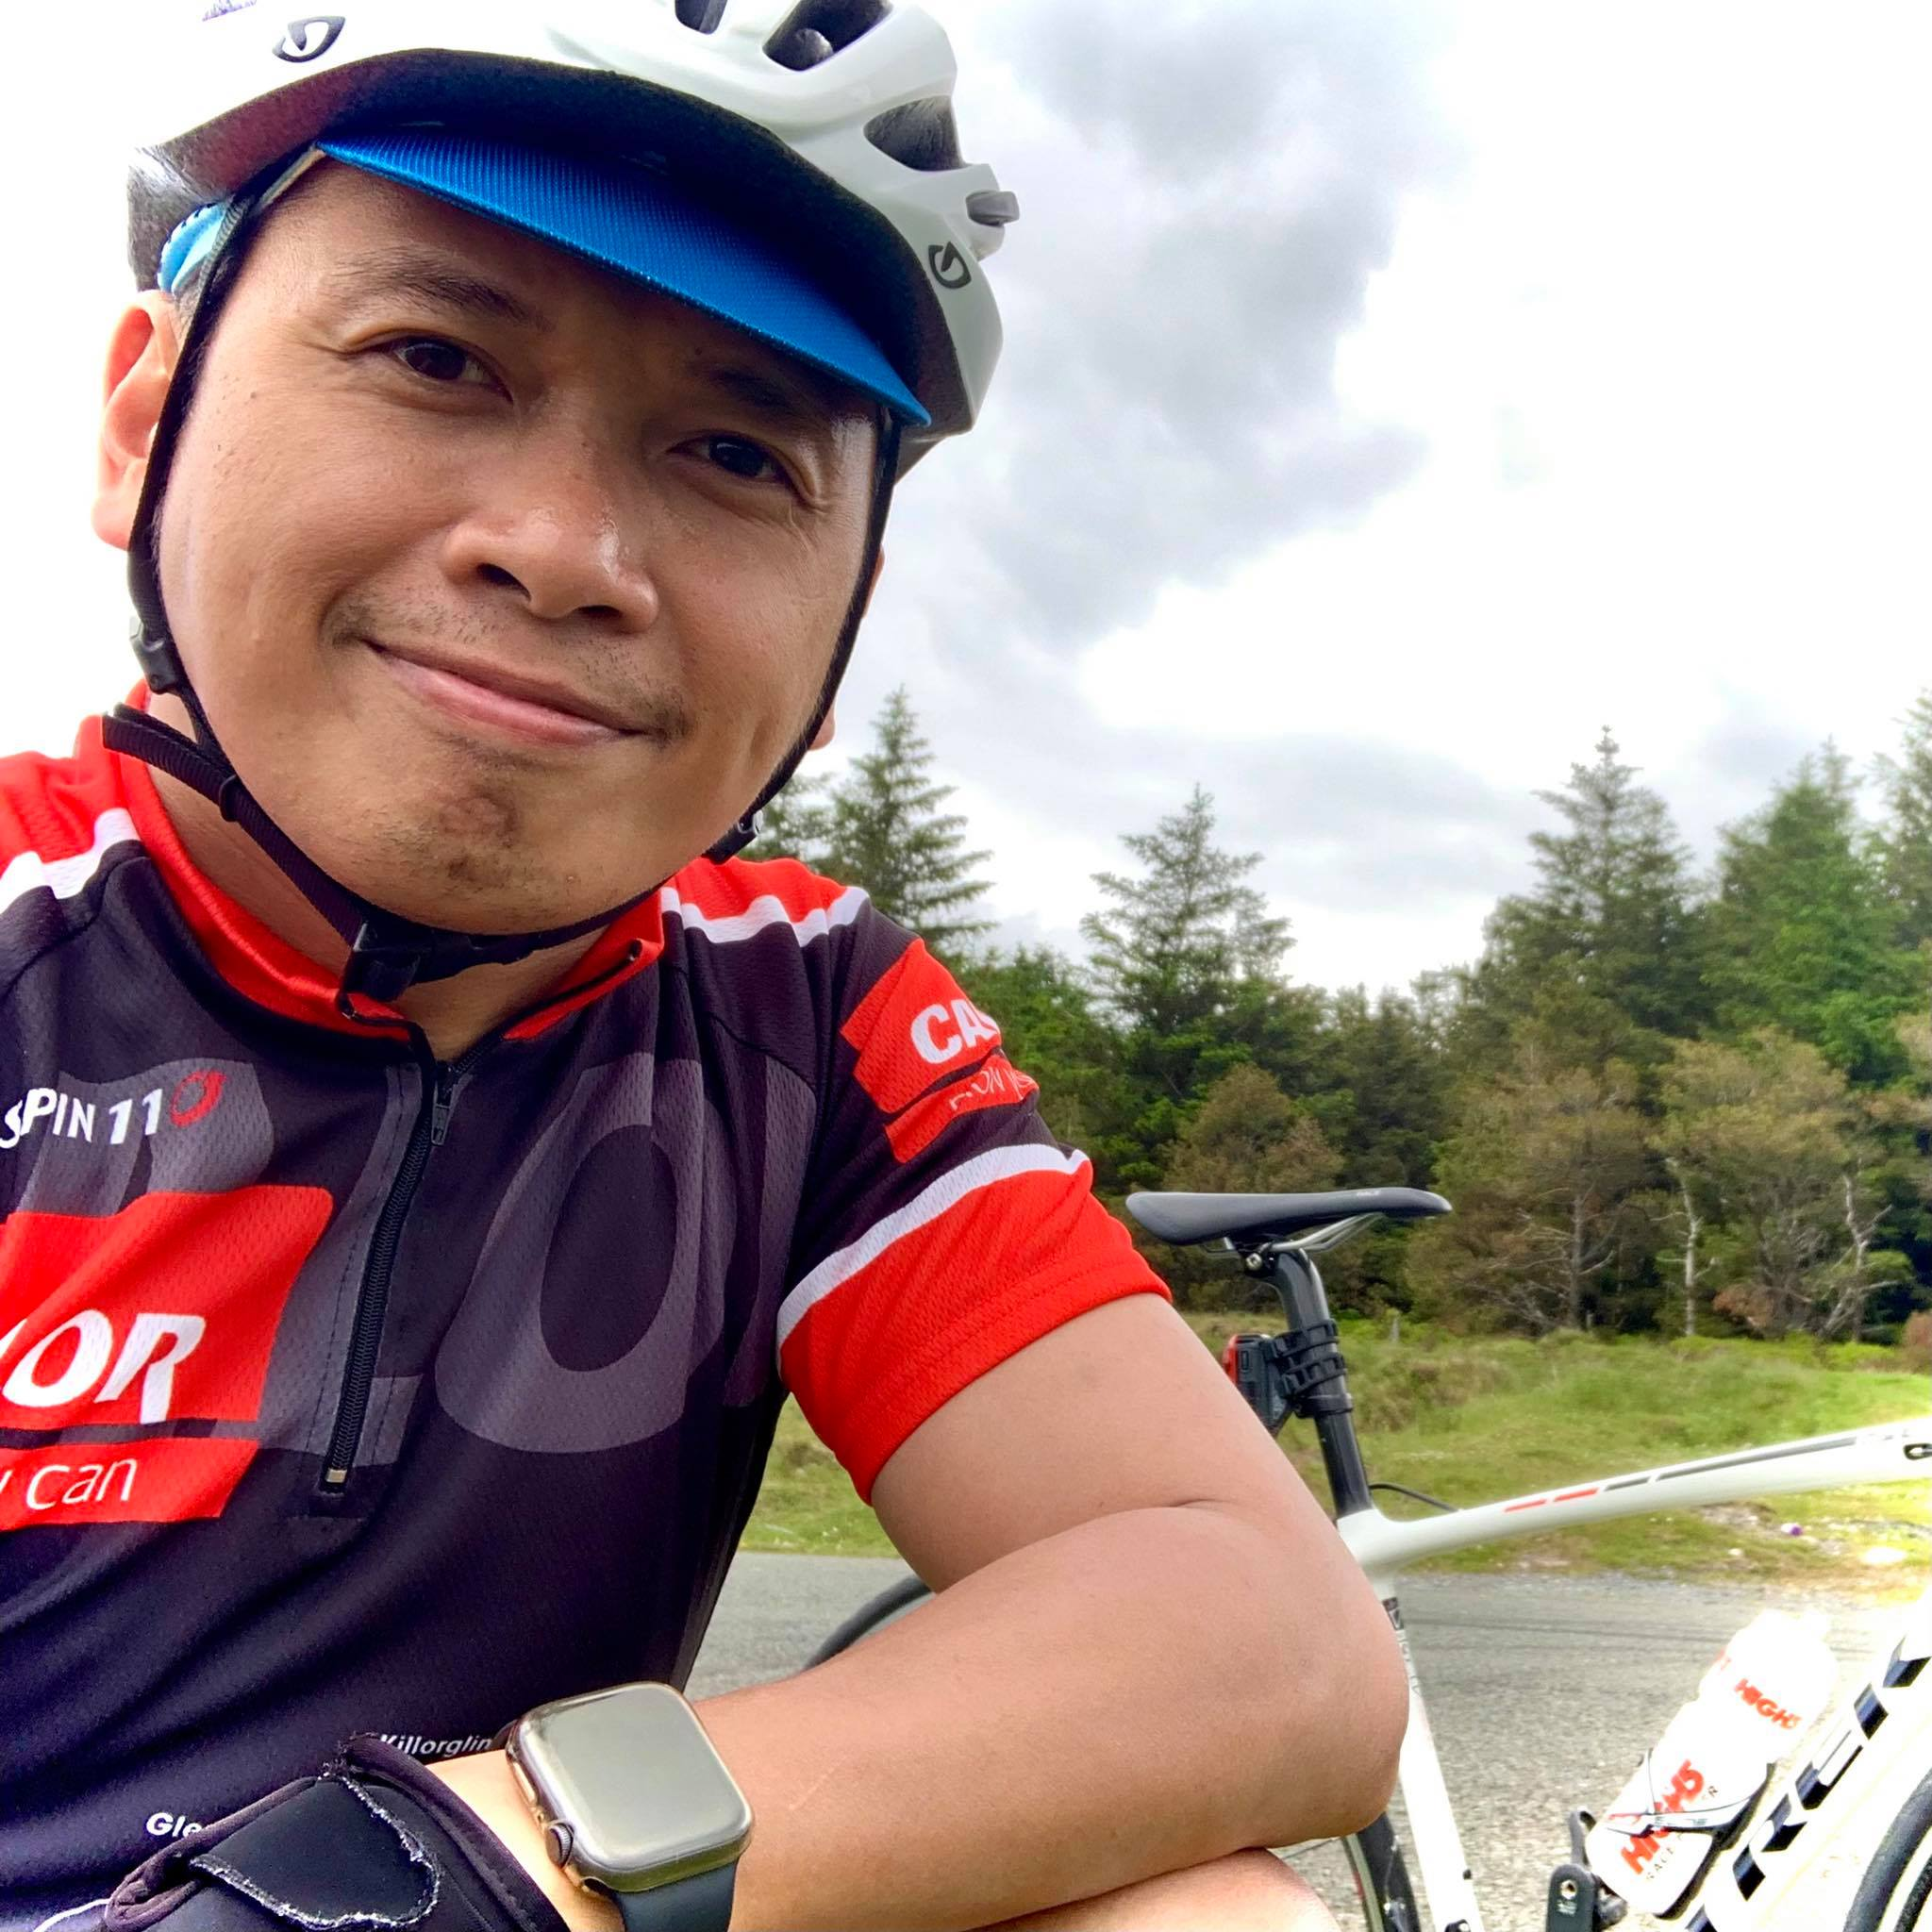 A man smiling with a cycling jersey and helmet in front of his bike near a forest